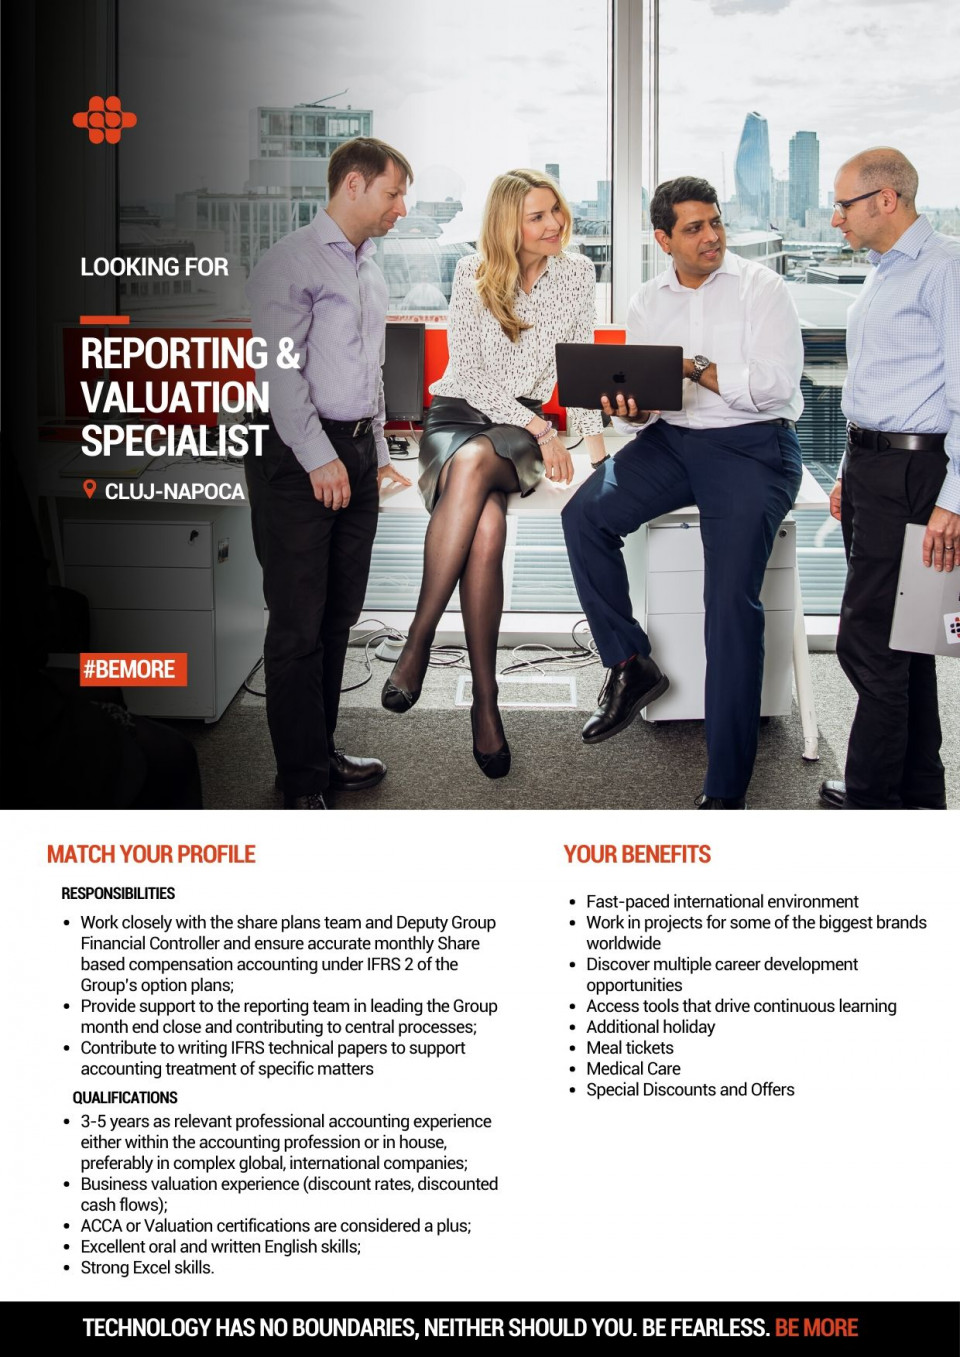 """A relevant professional accountancy qualification: Chartered Accountant (ACCA or equivalent, studies in progress accepted at a professional level), Valuation qualification is a plus; Several years of relevant professional accounting experience either within the accounting profession or in house, preferably in complex global, international companies; Business valuation experience (discount rates, discounted cash flows); Detailed understanding of financial statements reported under IFRS; Strong financial analytical skills; An enthusiasm to embrace new technologies and the new ways of workings derived from them. Comfortable challenging existing processes to find improvements and minimize risks; Very good communication, networking, and influencing skills with sensitivity to working across multi-cultural teams. Ability to operate effectively in an ever-changing and demanding work environment; Excellent oral and written English skills; Strong Excel skills.   Work closely with the share plans team and Deputy Group Financial Controller (""""DGFC"""") and ensure accurate monthly Share-based compensation accounting under IFRS 2 of the Group's option plans; Provide support to the reporting team in leading the Group month-end close and contributing to central processes; Prepare impairment tests for the Group's Intangibles and Goodwill and Investment in subsidiaries; Participate in coordination of the Group financial audit and support local financial audits. Work closely with the DGFC and Group Financial Controller (""""GFC"""") in the M&A process, from due diligence phase to preparation of completion accounts; Build and implement an integration reporting pack to be used for monthly actuals reporting by newly acquired businesses. Work closely with the FP&A team to facilitate this; Contribute to writing IFRS technical papers to support accounting treatment of specific matters; Own controls documentation under SOX for assigned areas.  Endava is a leading European IT services organisation with"""